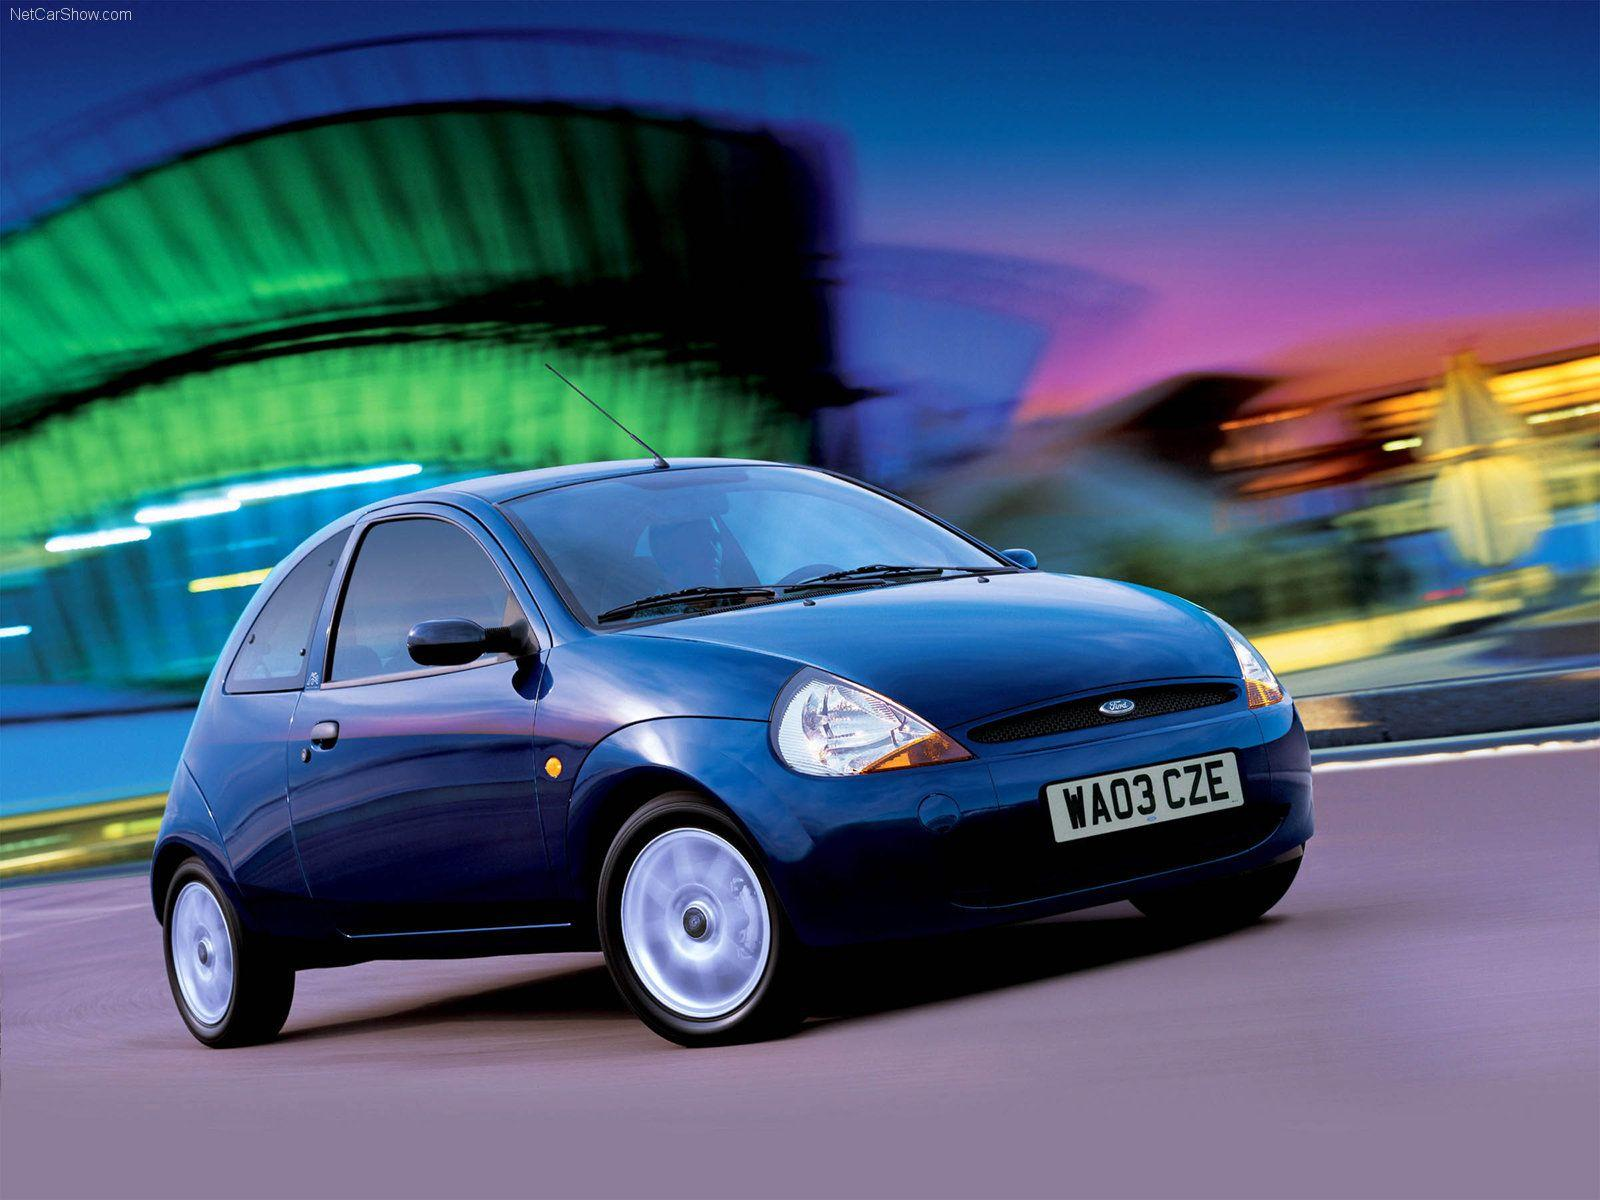 Ford KA picture # 33348 | Ford photo gallery | CarsBase.com